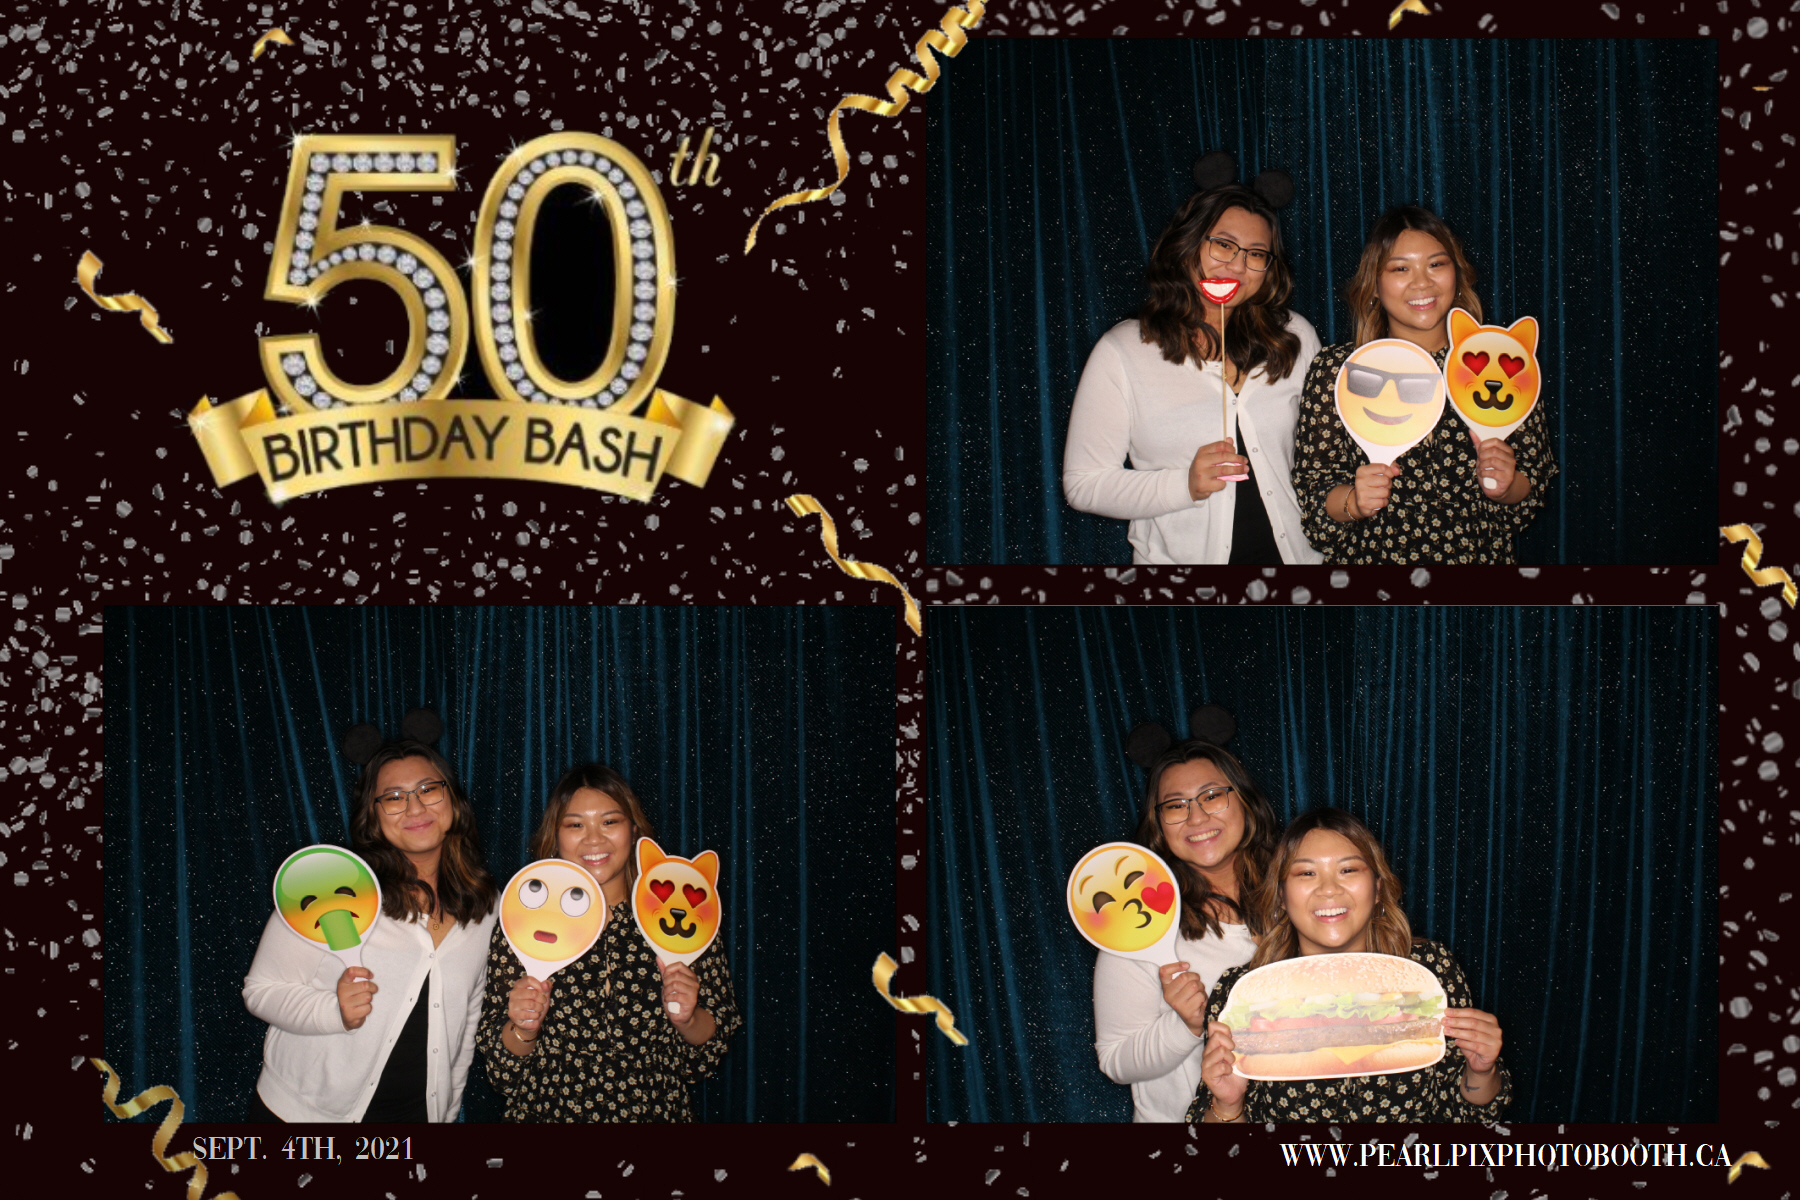 Peter_s 50th Bday_31